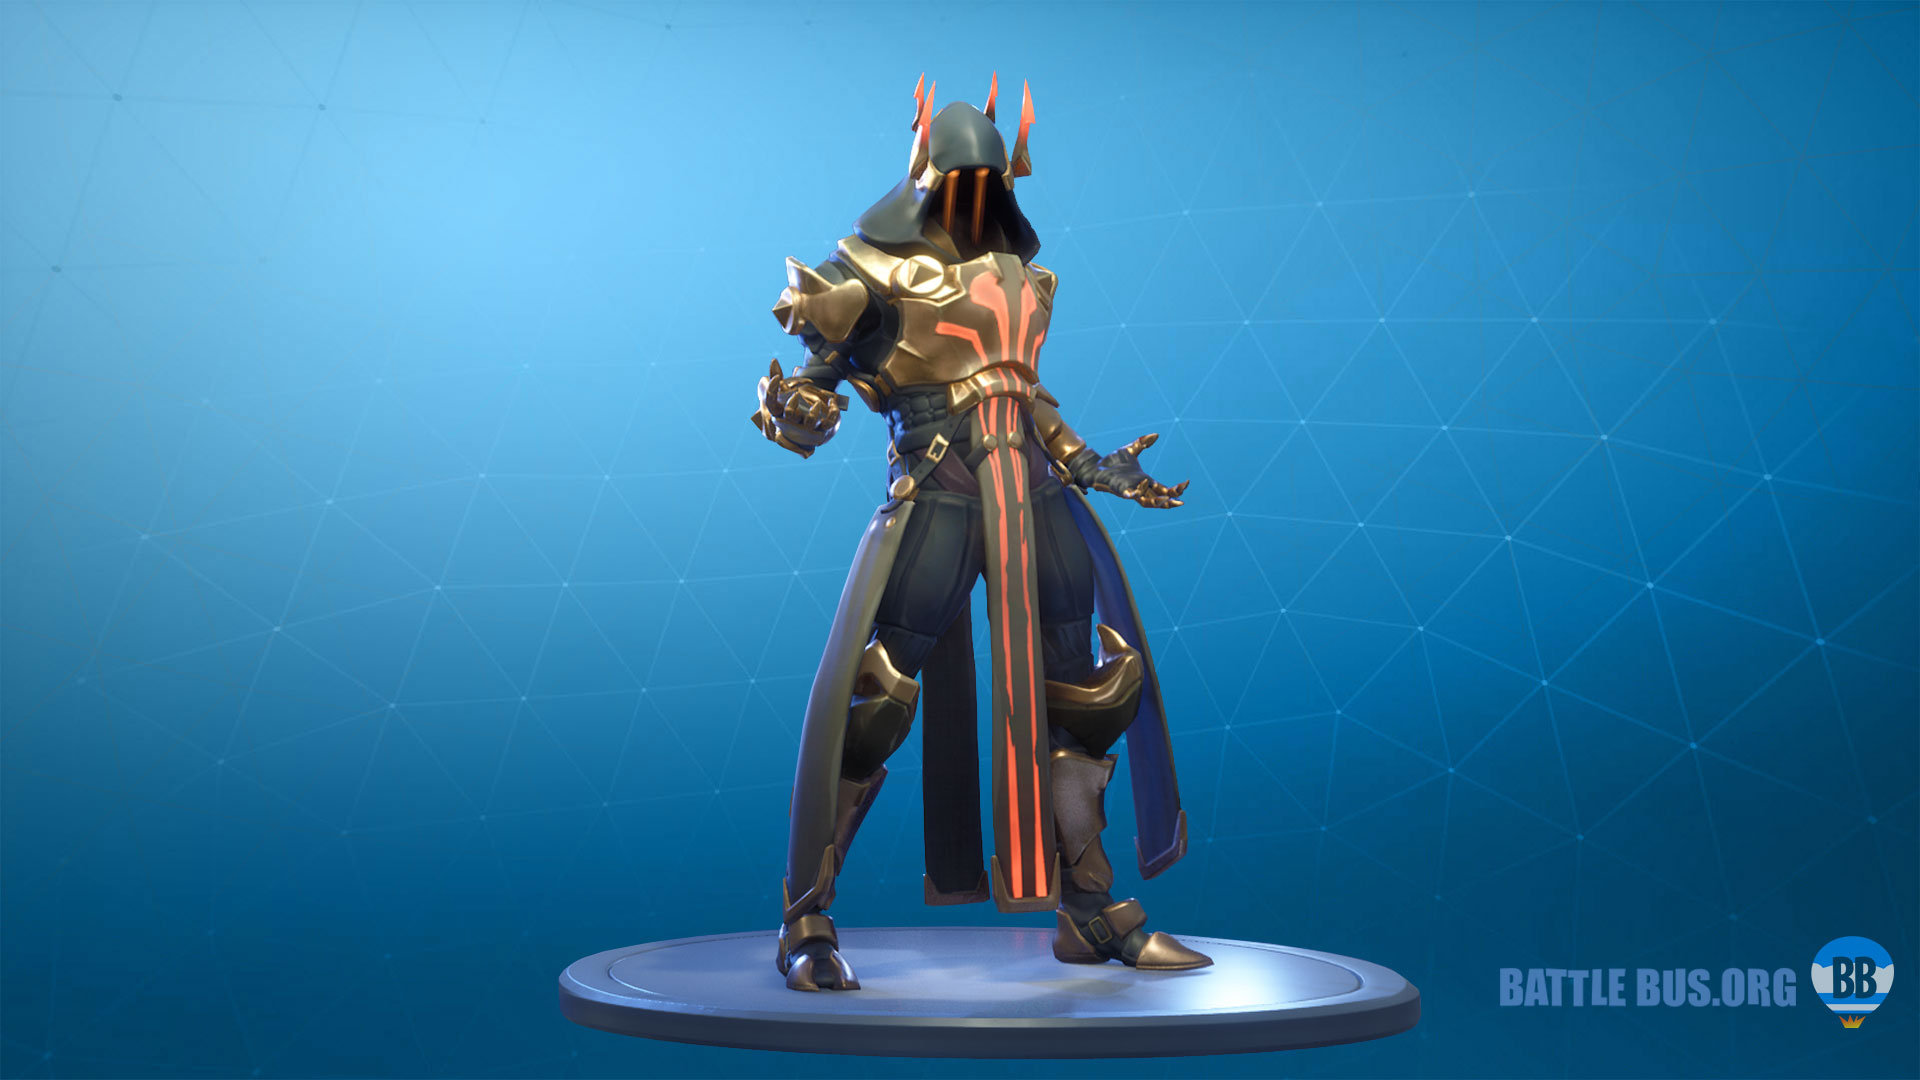 Ice King Fortnite Skin Tier 100 Season 7 Battle Pass Outfit